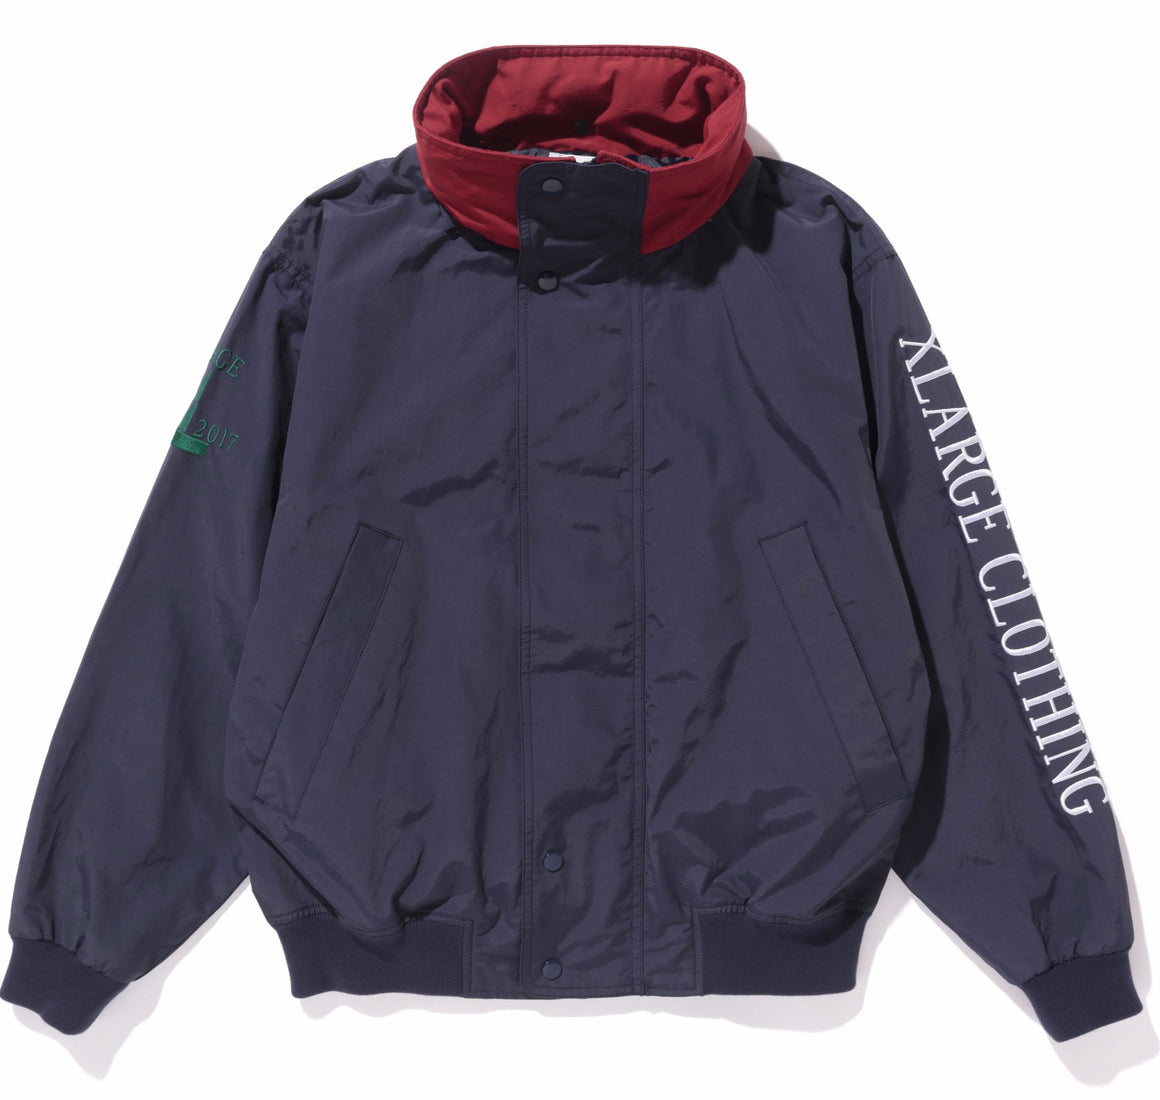 NC SAILING JACKET - X-Large Clothing